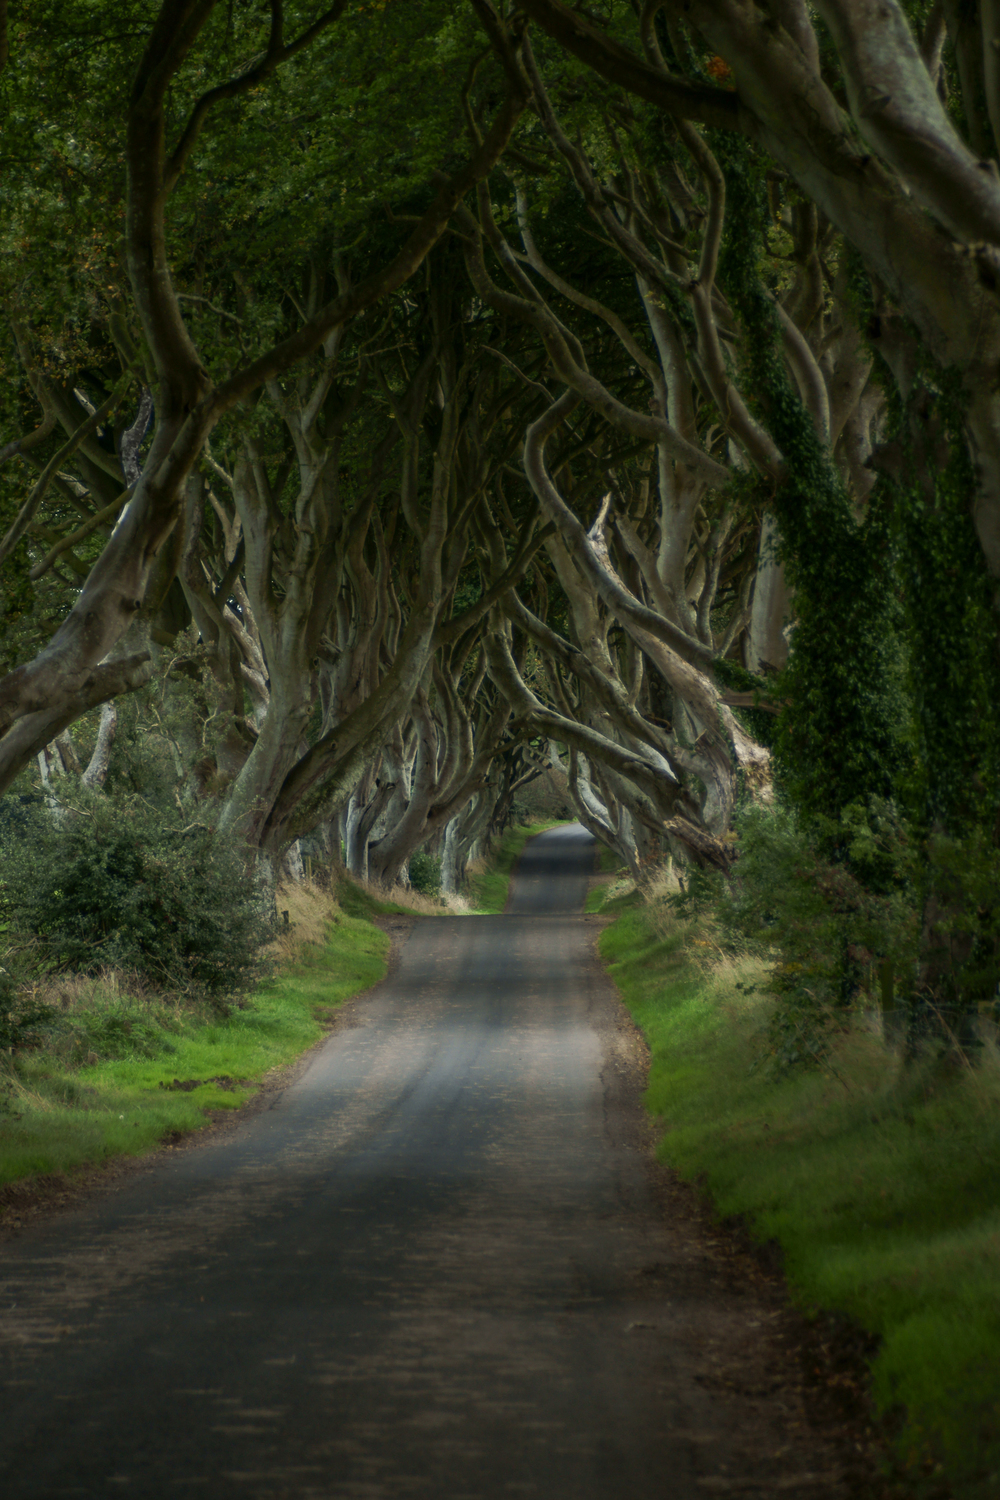 Dark hedges - Summer-Edit-Edit.jpg